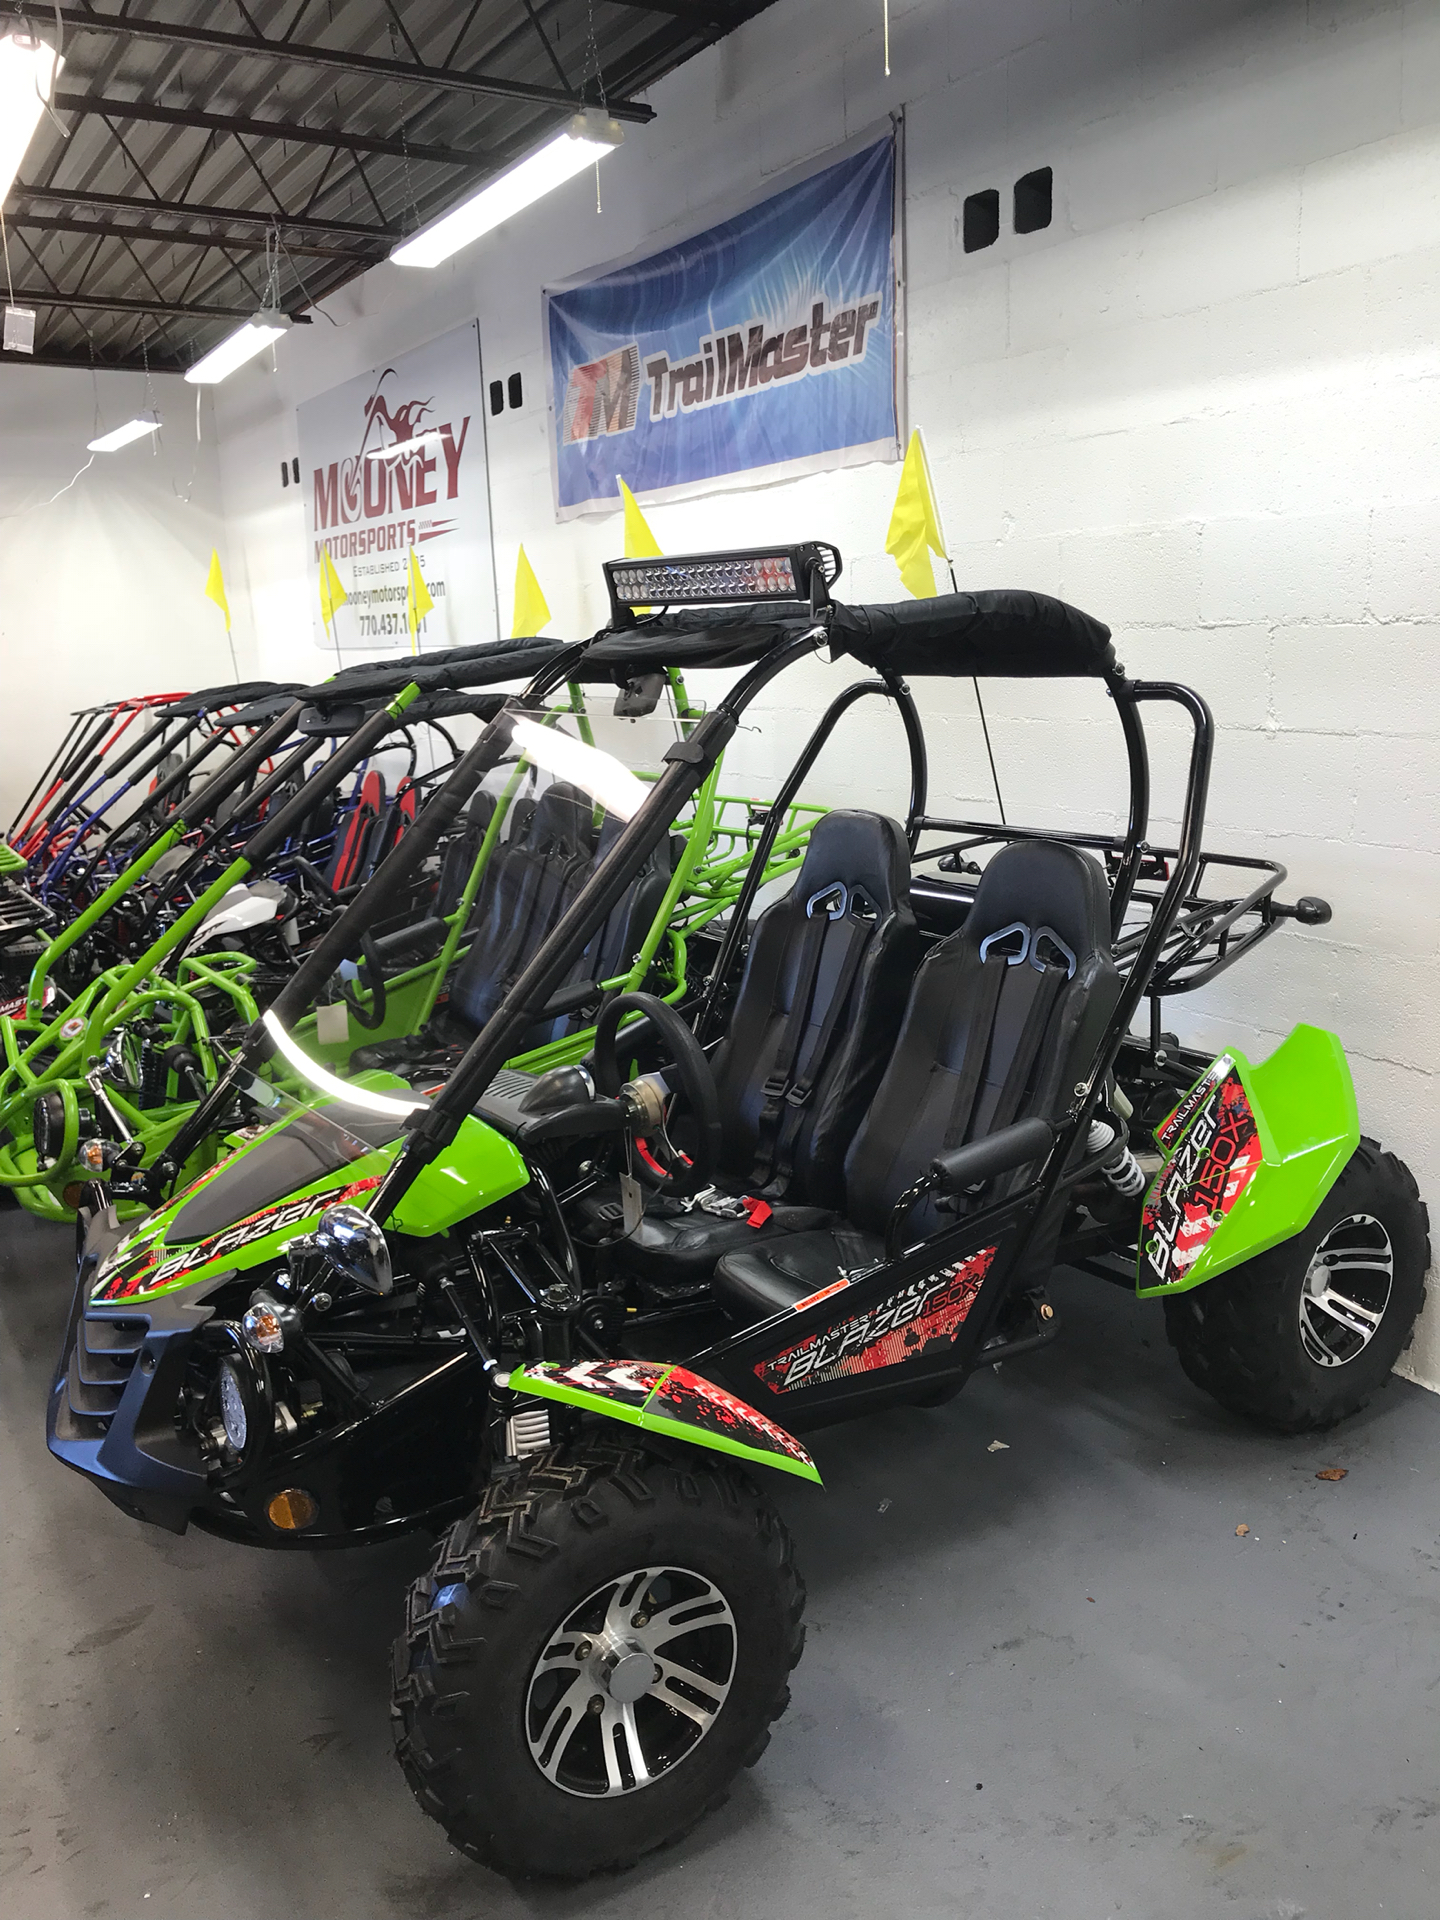 2018 Trailmaster Blazer 150X in Smyrna, Georgia - Photo 2